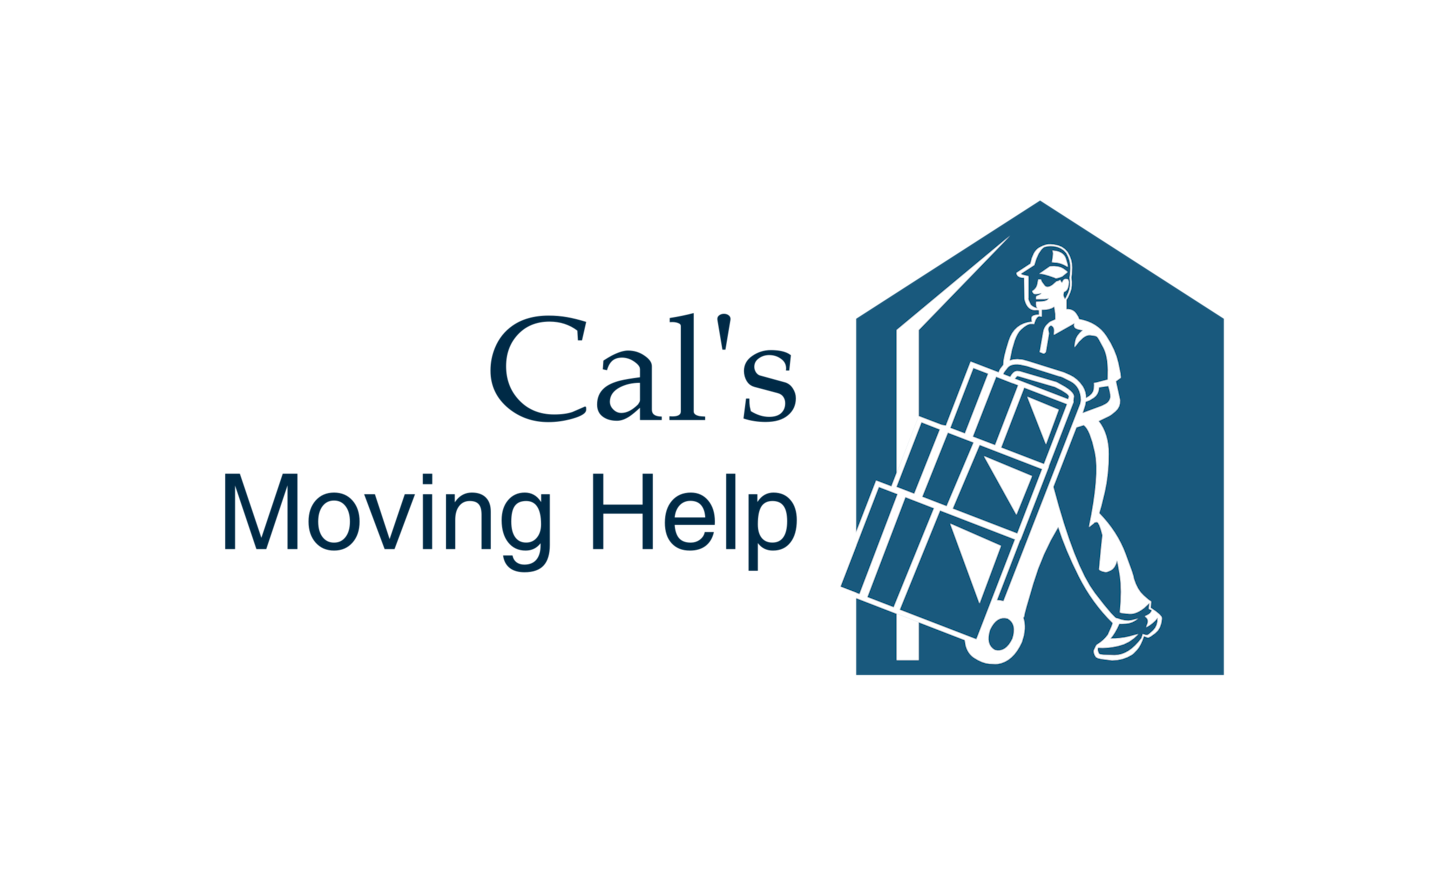 Cal's Moving Help